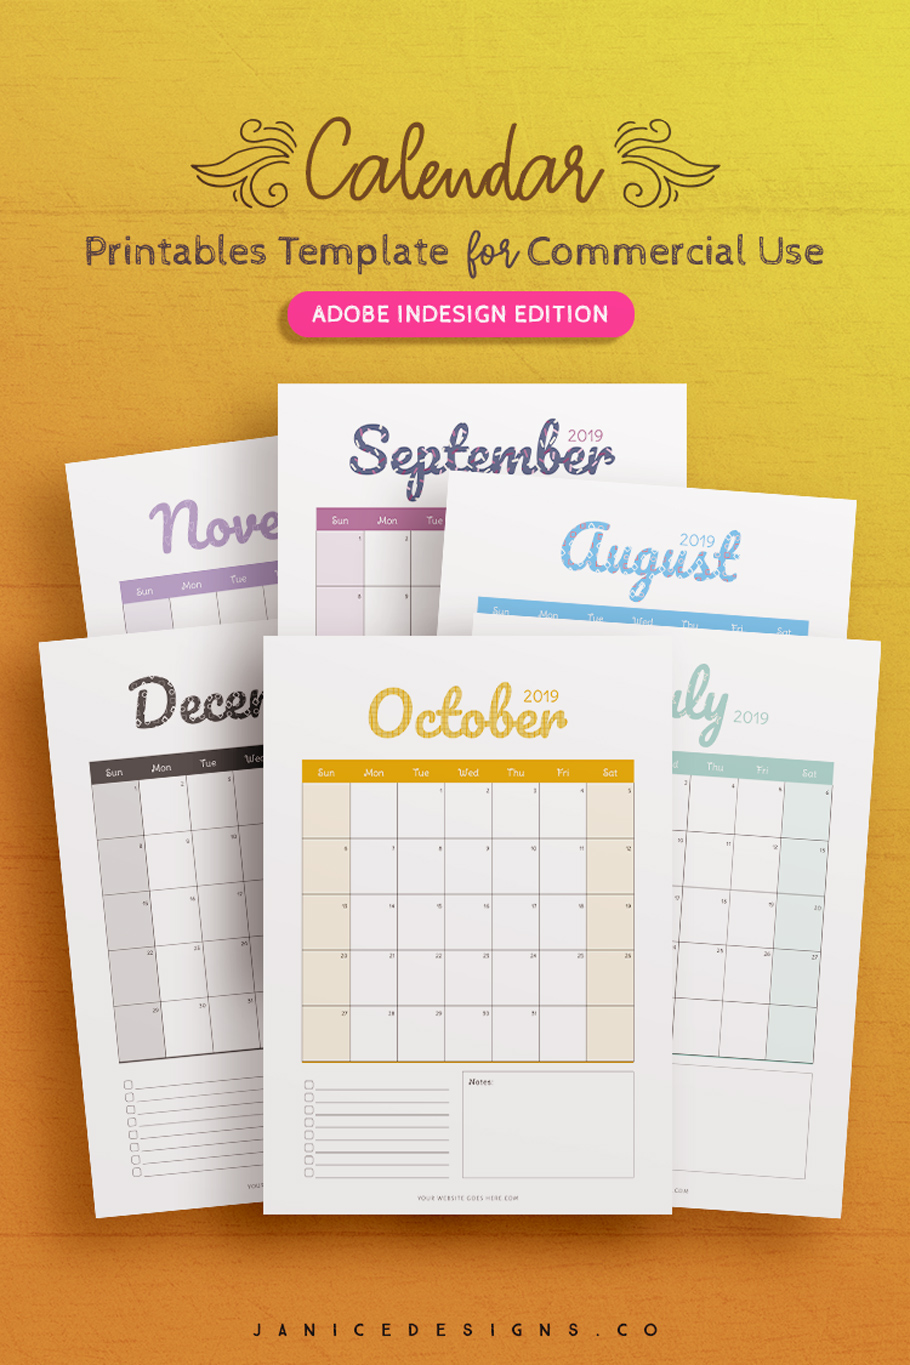 2019 Calendar InDesign Template for Commercial Use example image 3